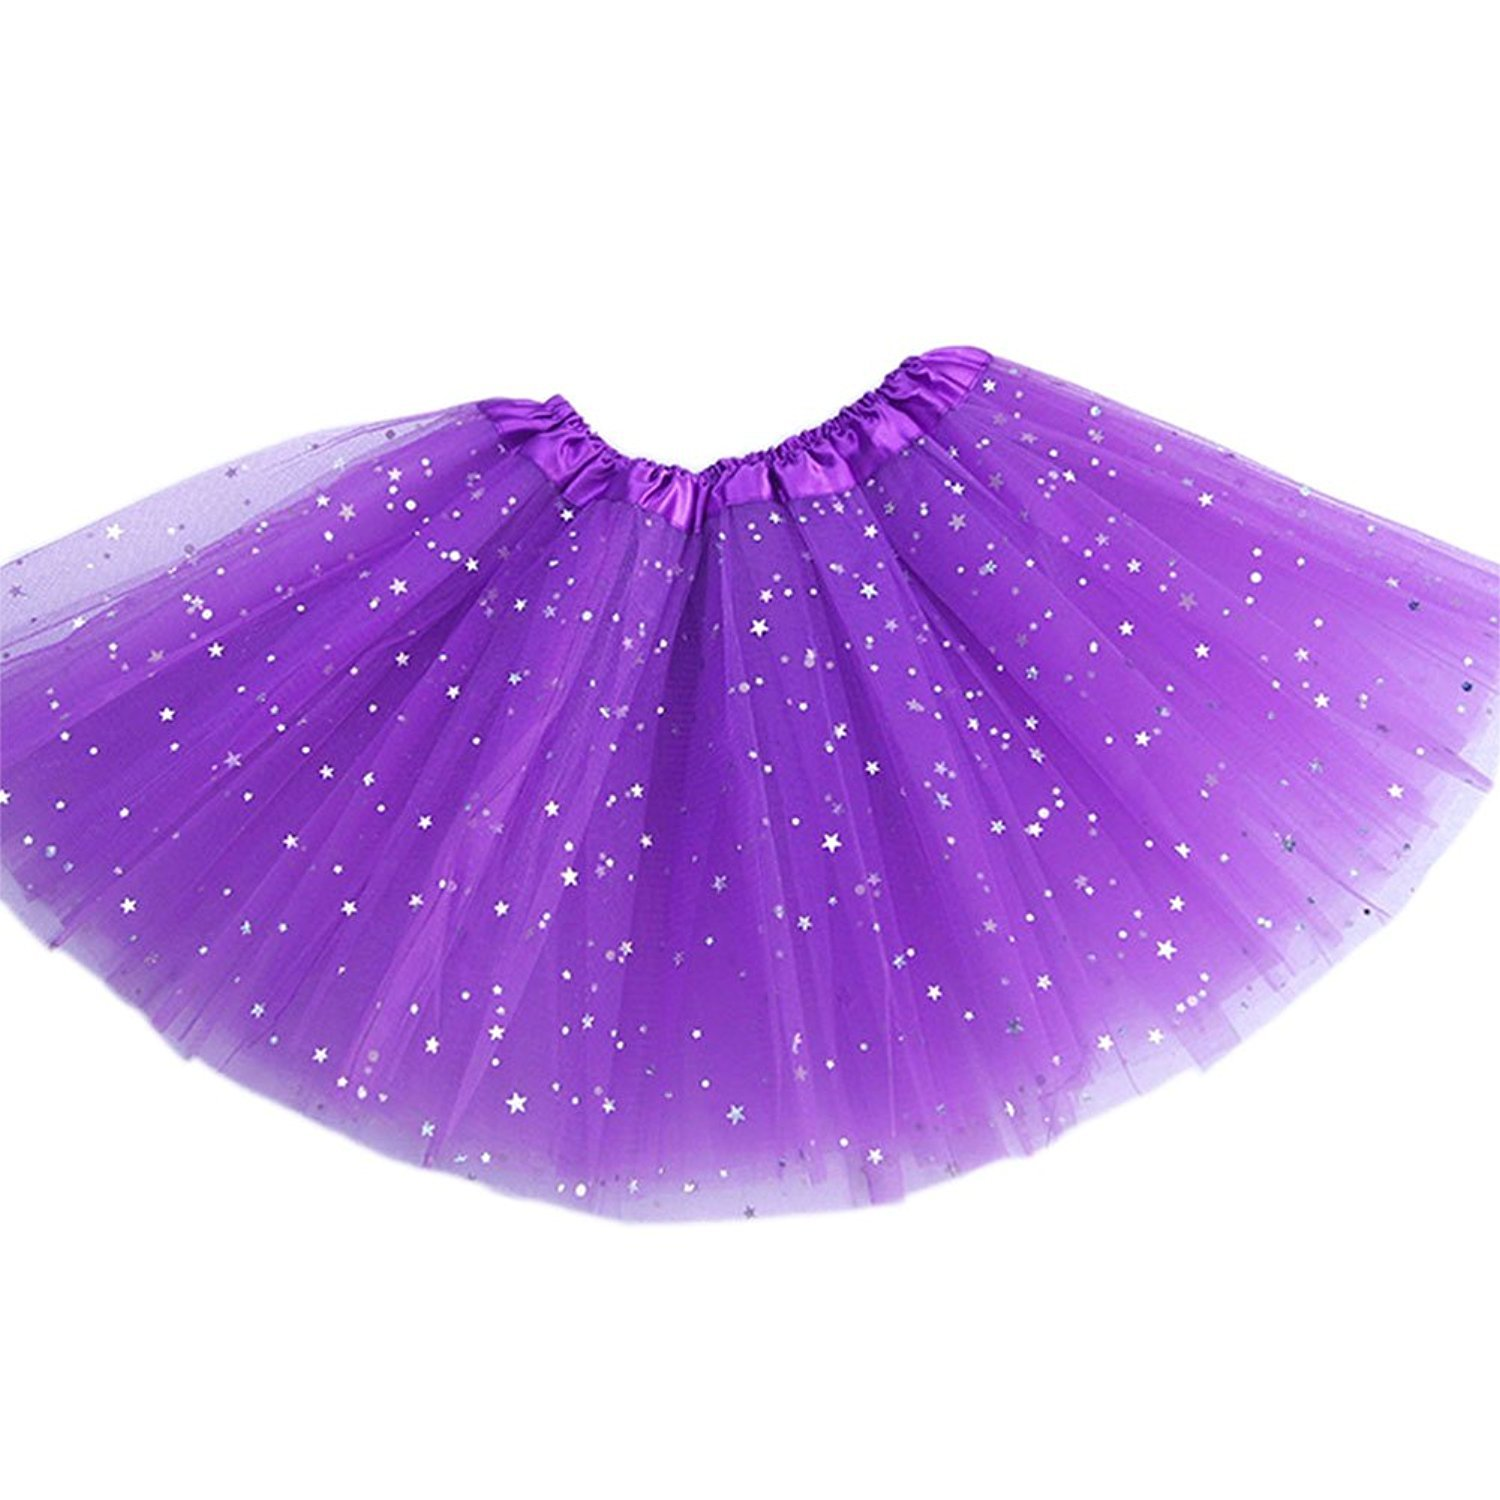 799961a0e8 AMORETU Womens Sparkly Star Sequin Organza Tutu Skirt 3 Layers Halloween  Party Green: Amazon.co.uk: Clothing